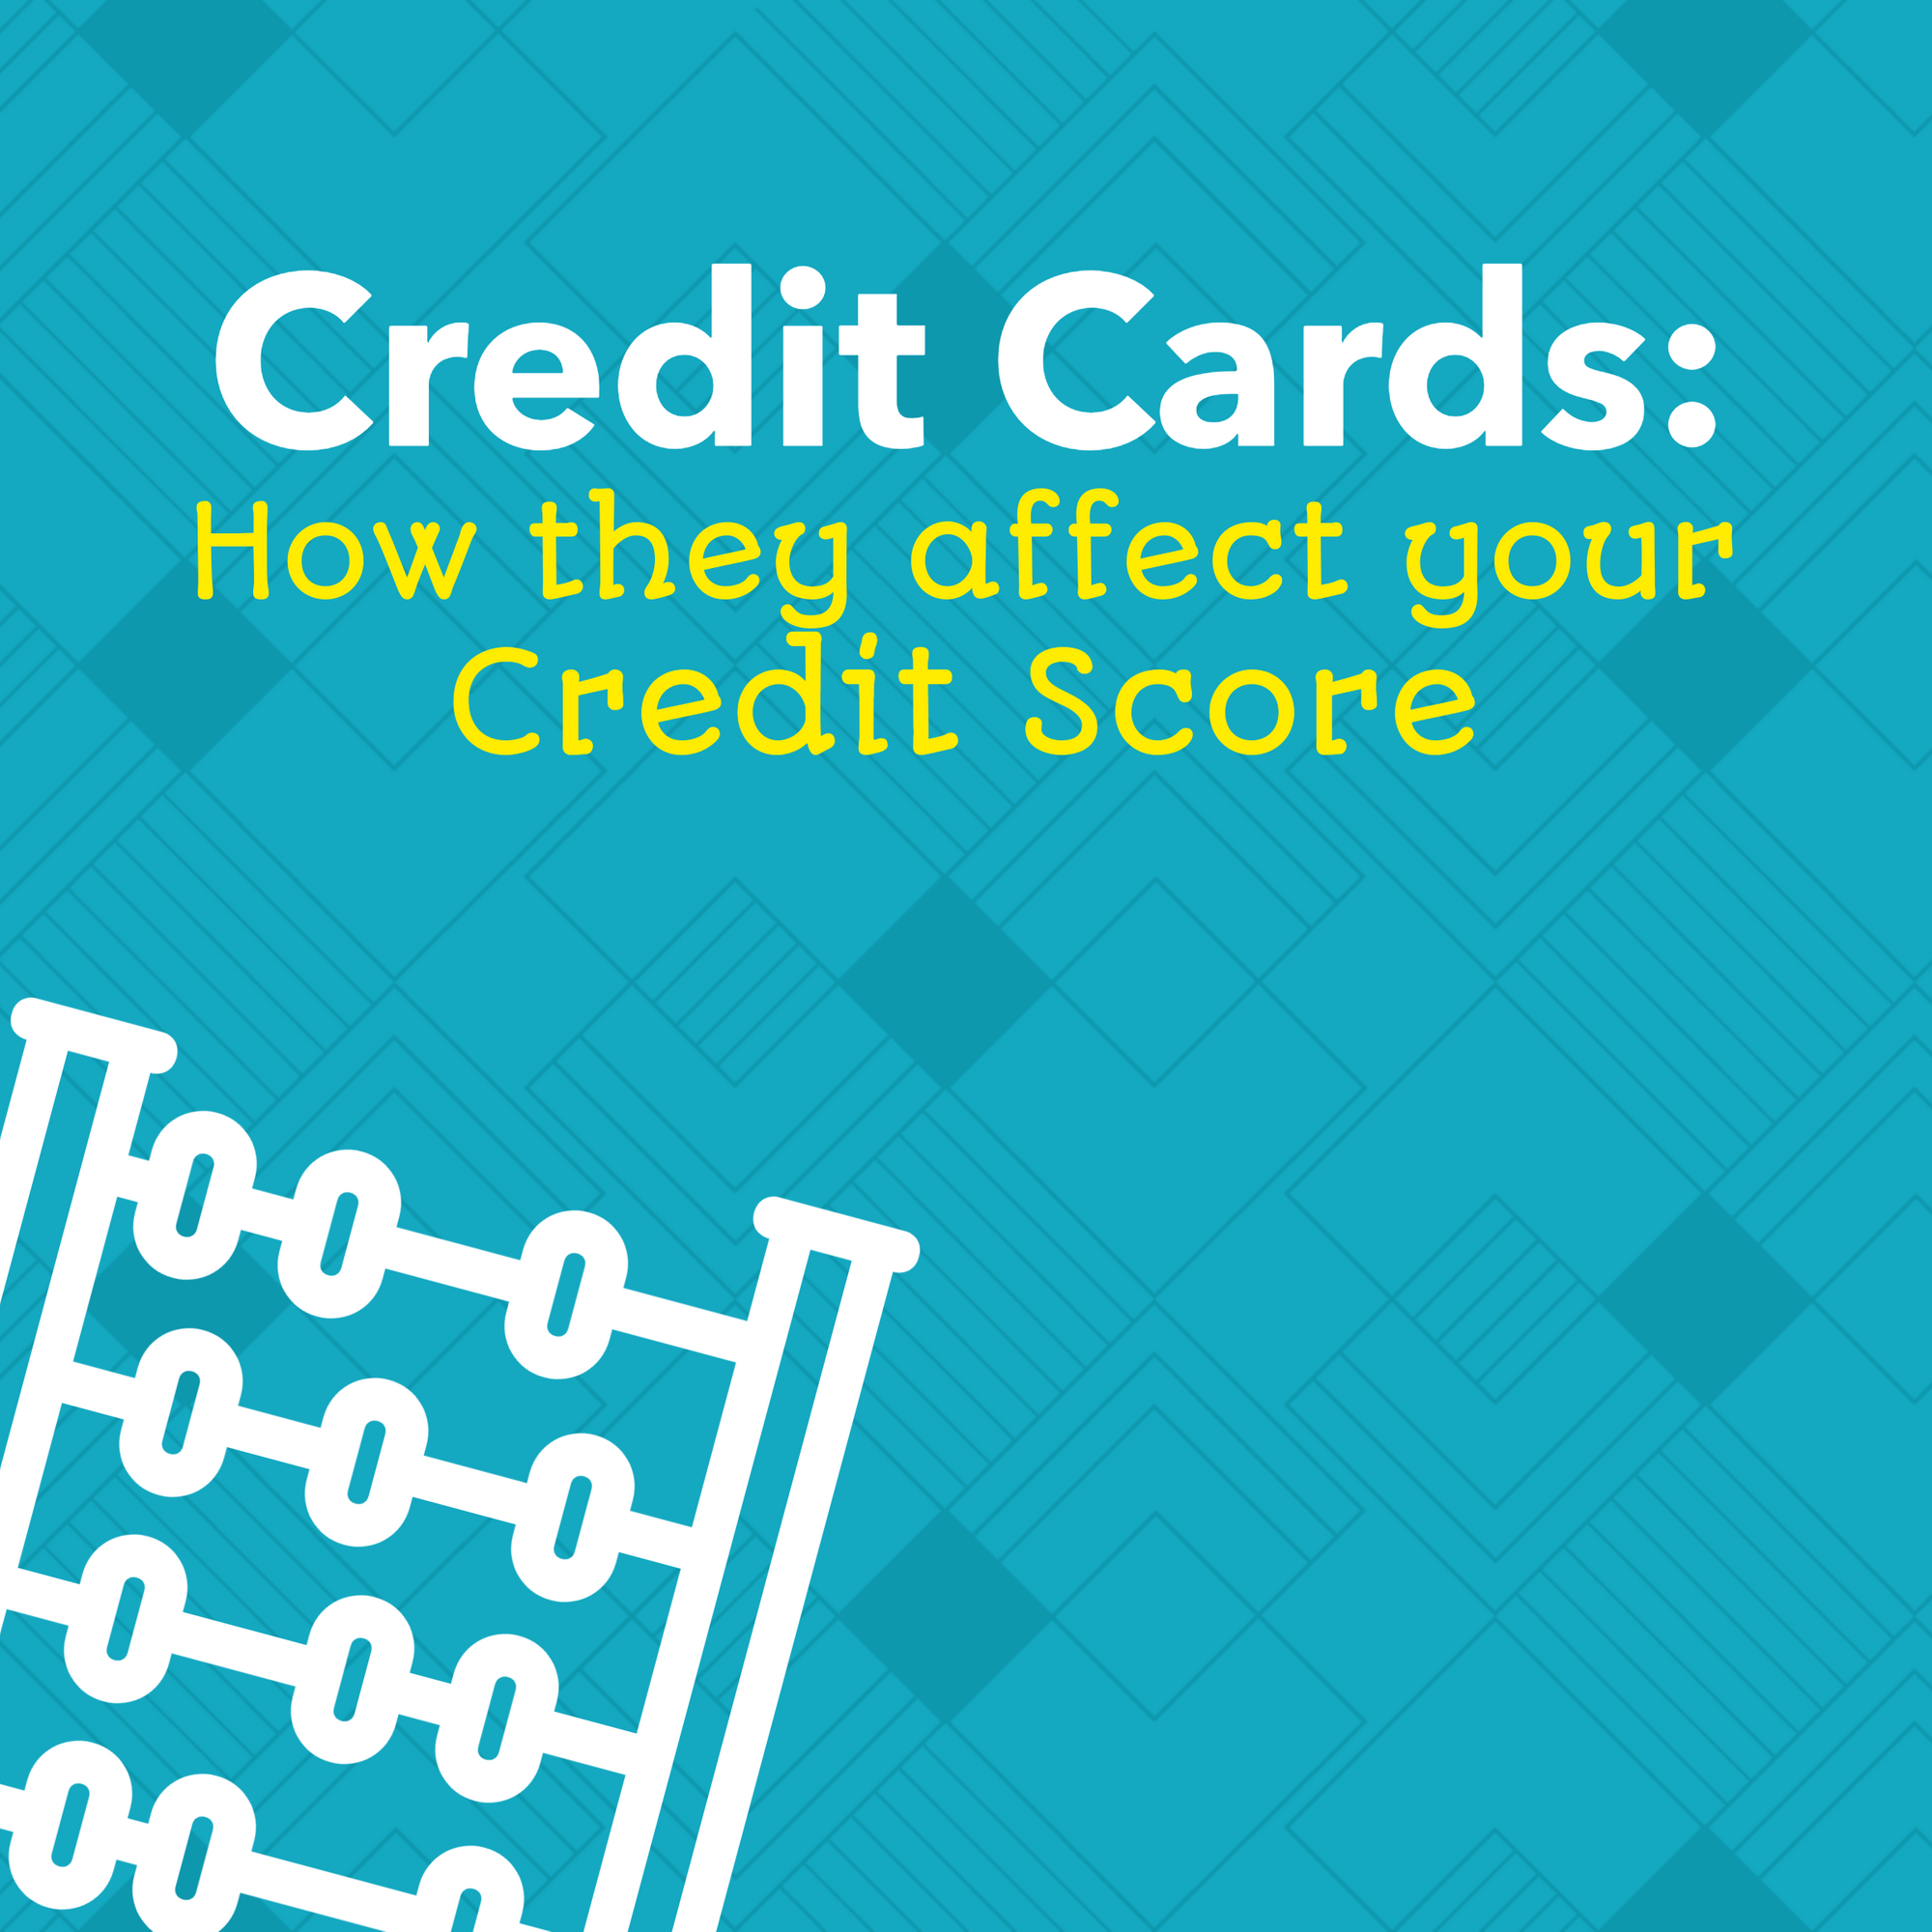 How Credit Cards Affect Your Credit Score With Images Credit